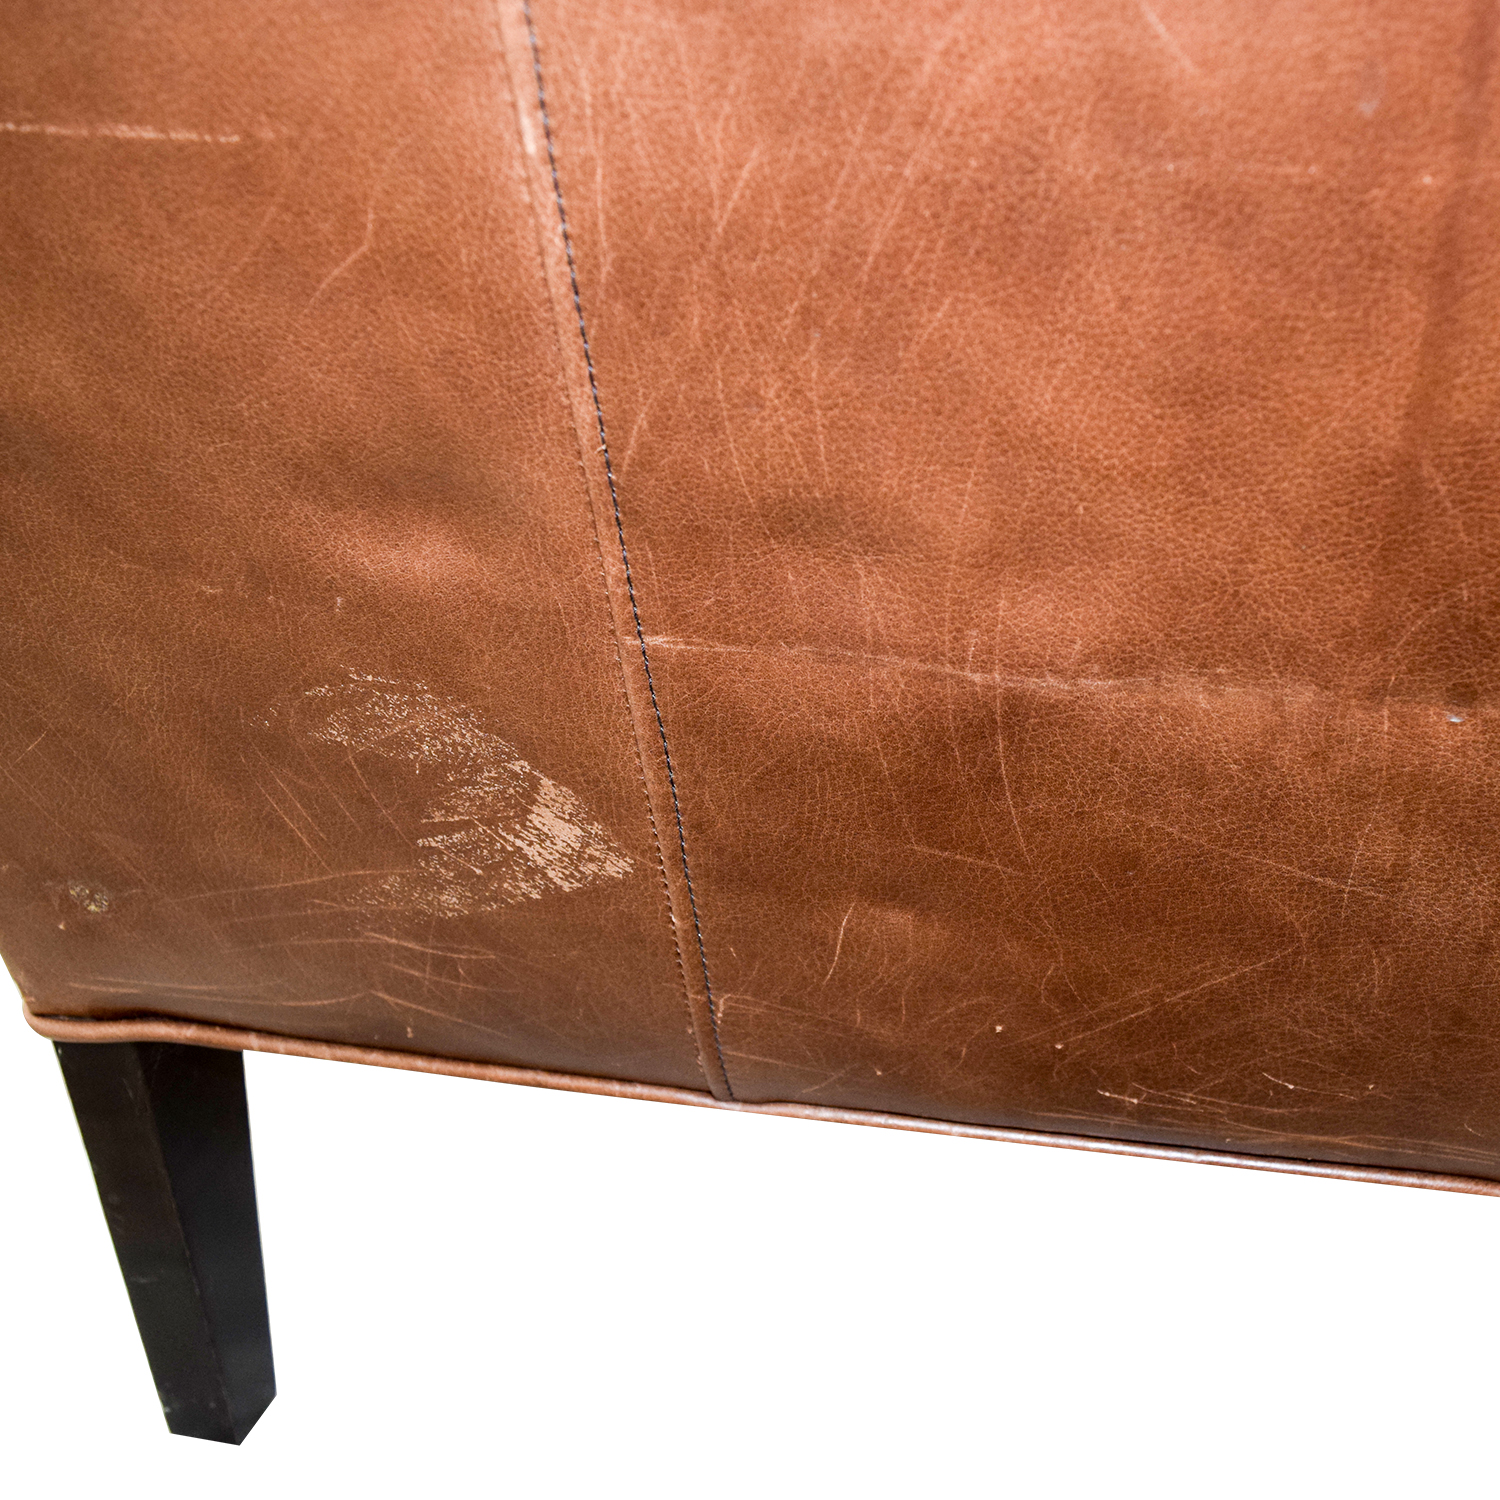 Crate & Barrel Crate & Barrel Brown Leather Arm Chair Brown